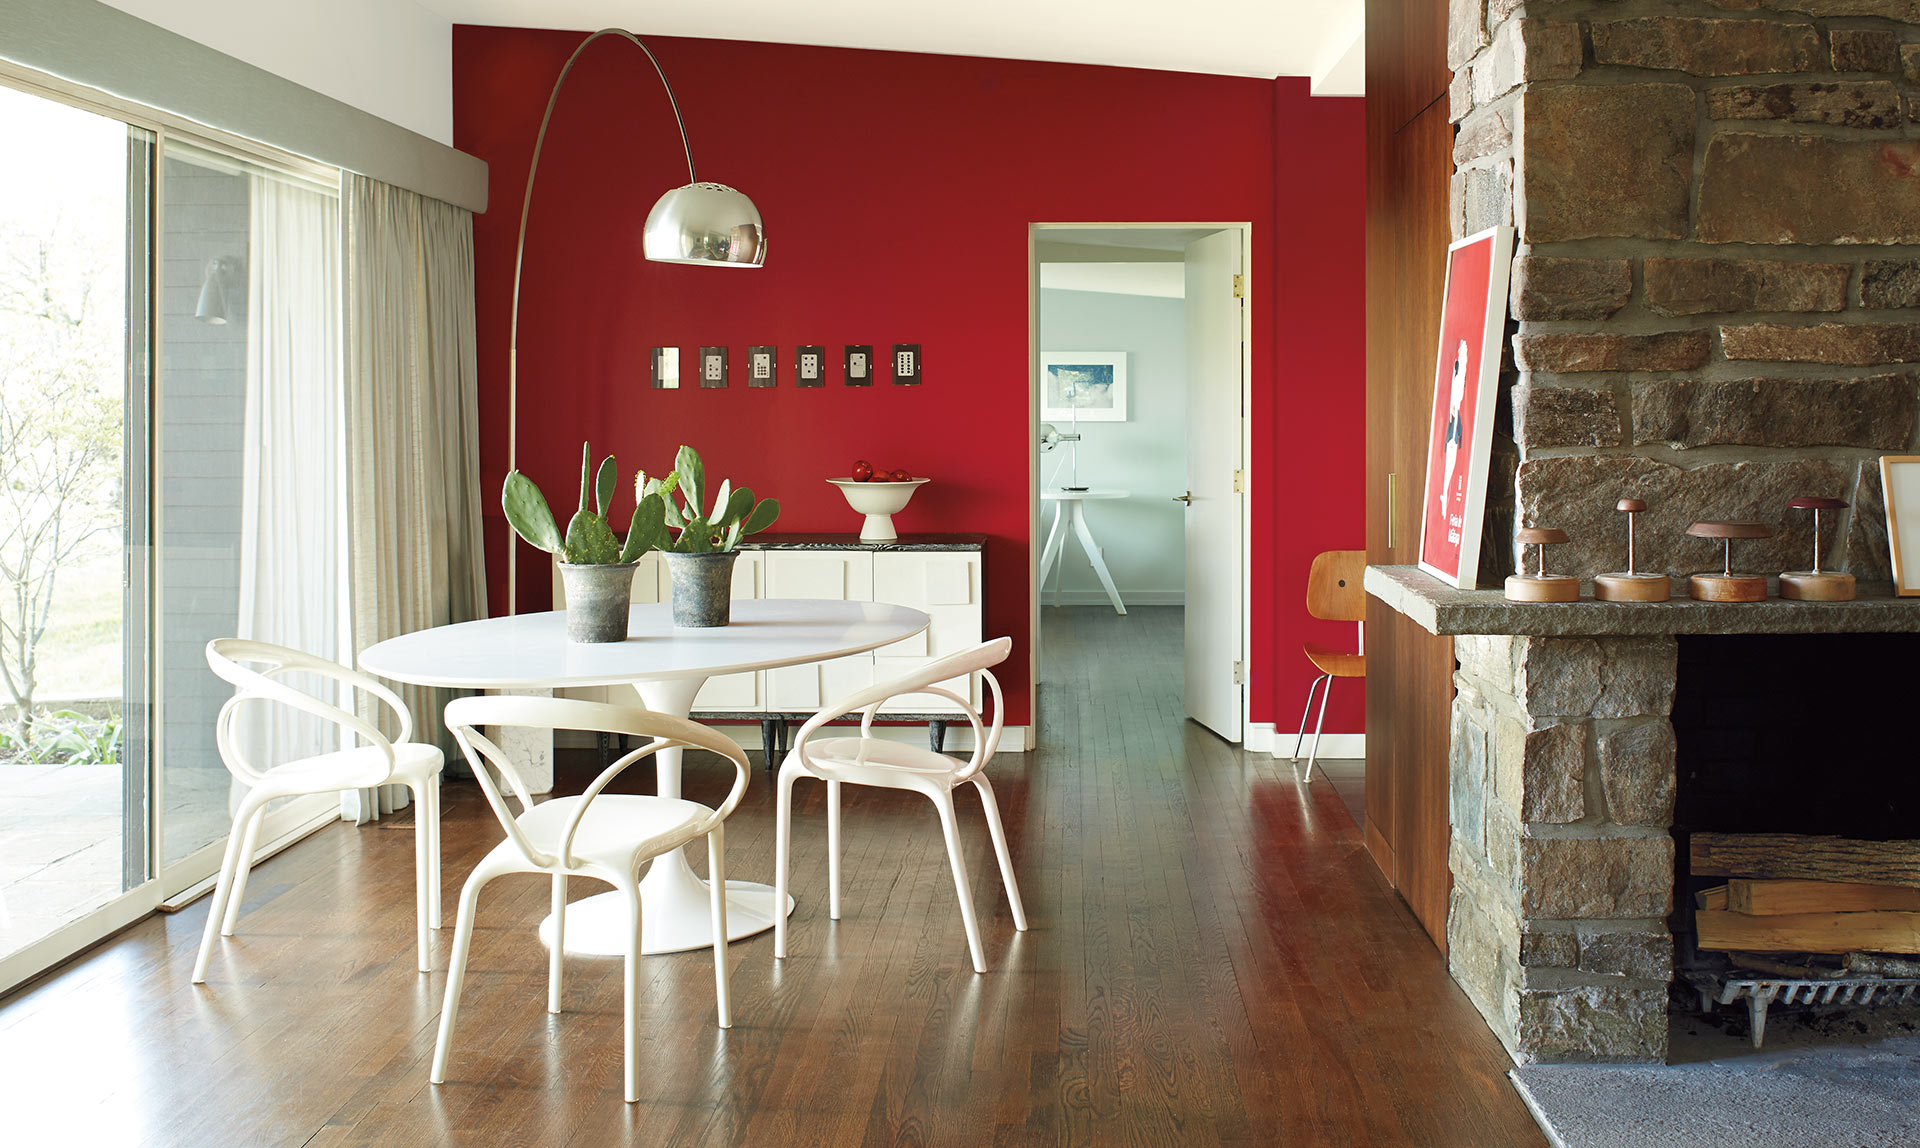 Benjamin moore color of the year 2018 is everything you might wish for 4 benjamin moore